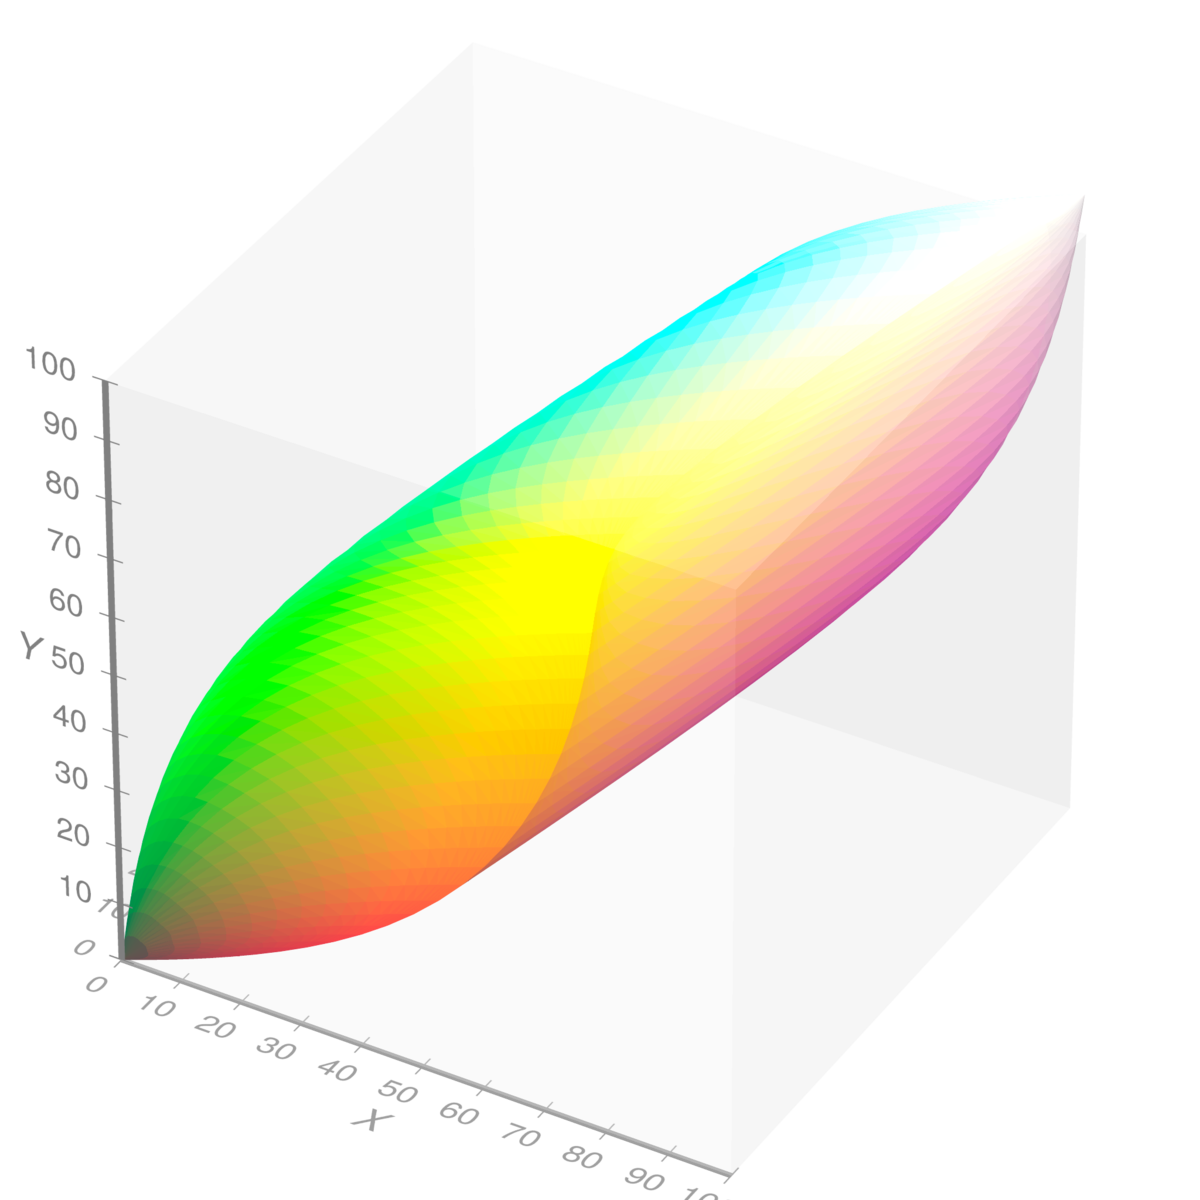 File:Visible gamut within CIEXYZ color space D65 whitepoint